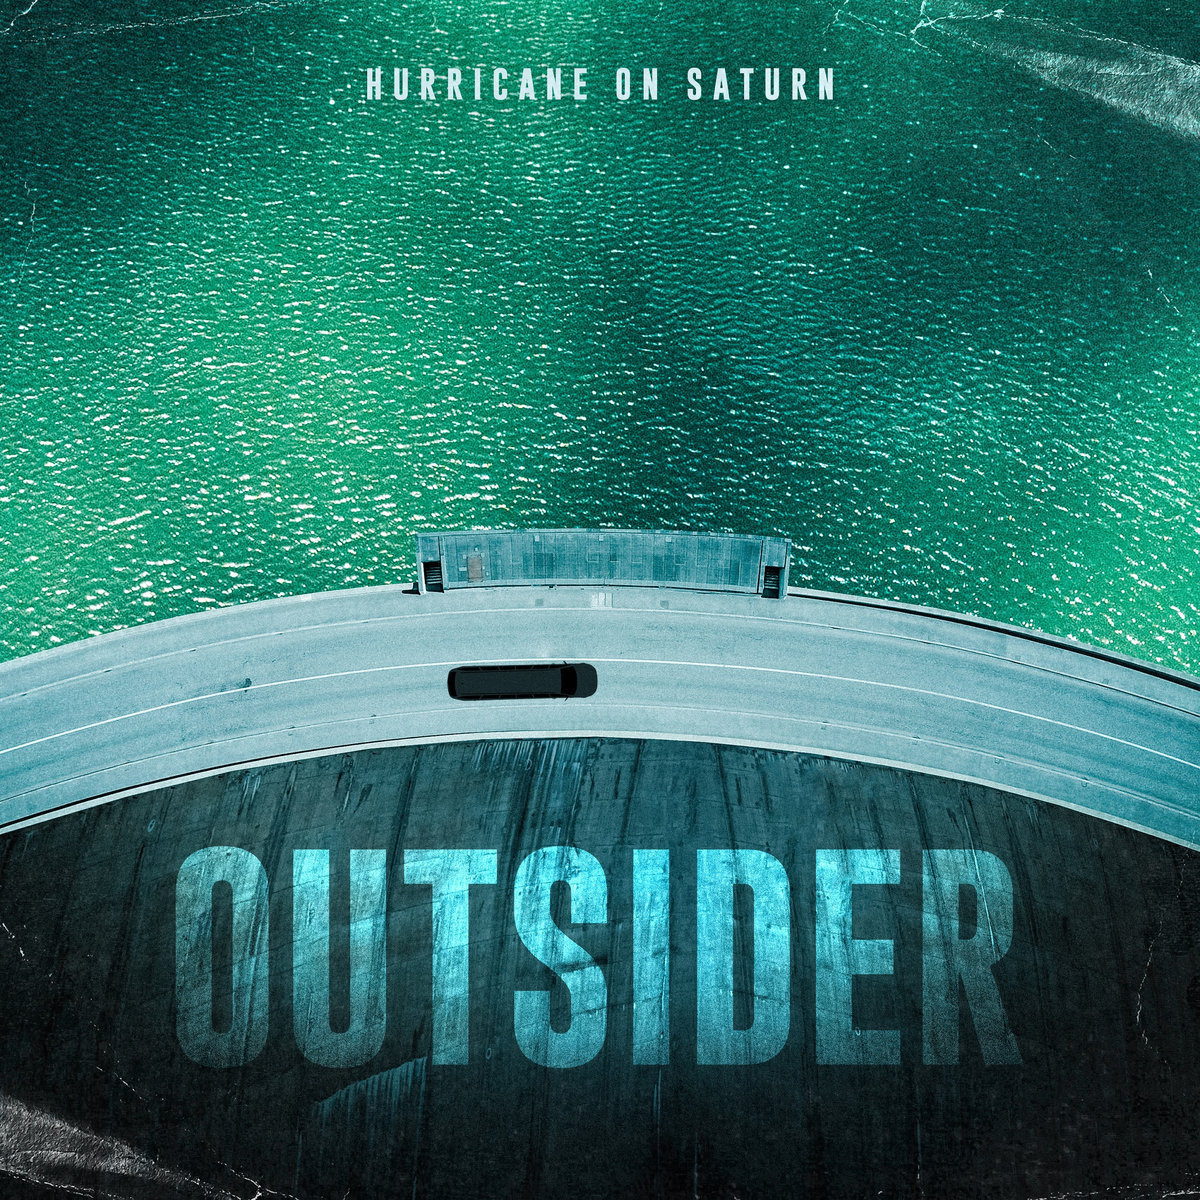 Outsider by Hurricane On Saturn